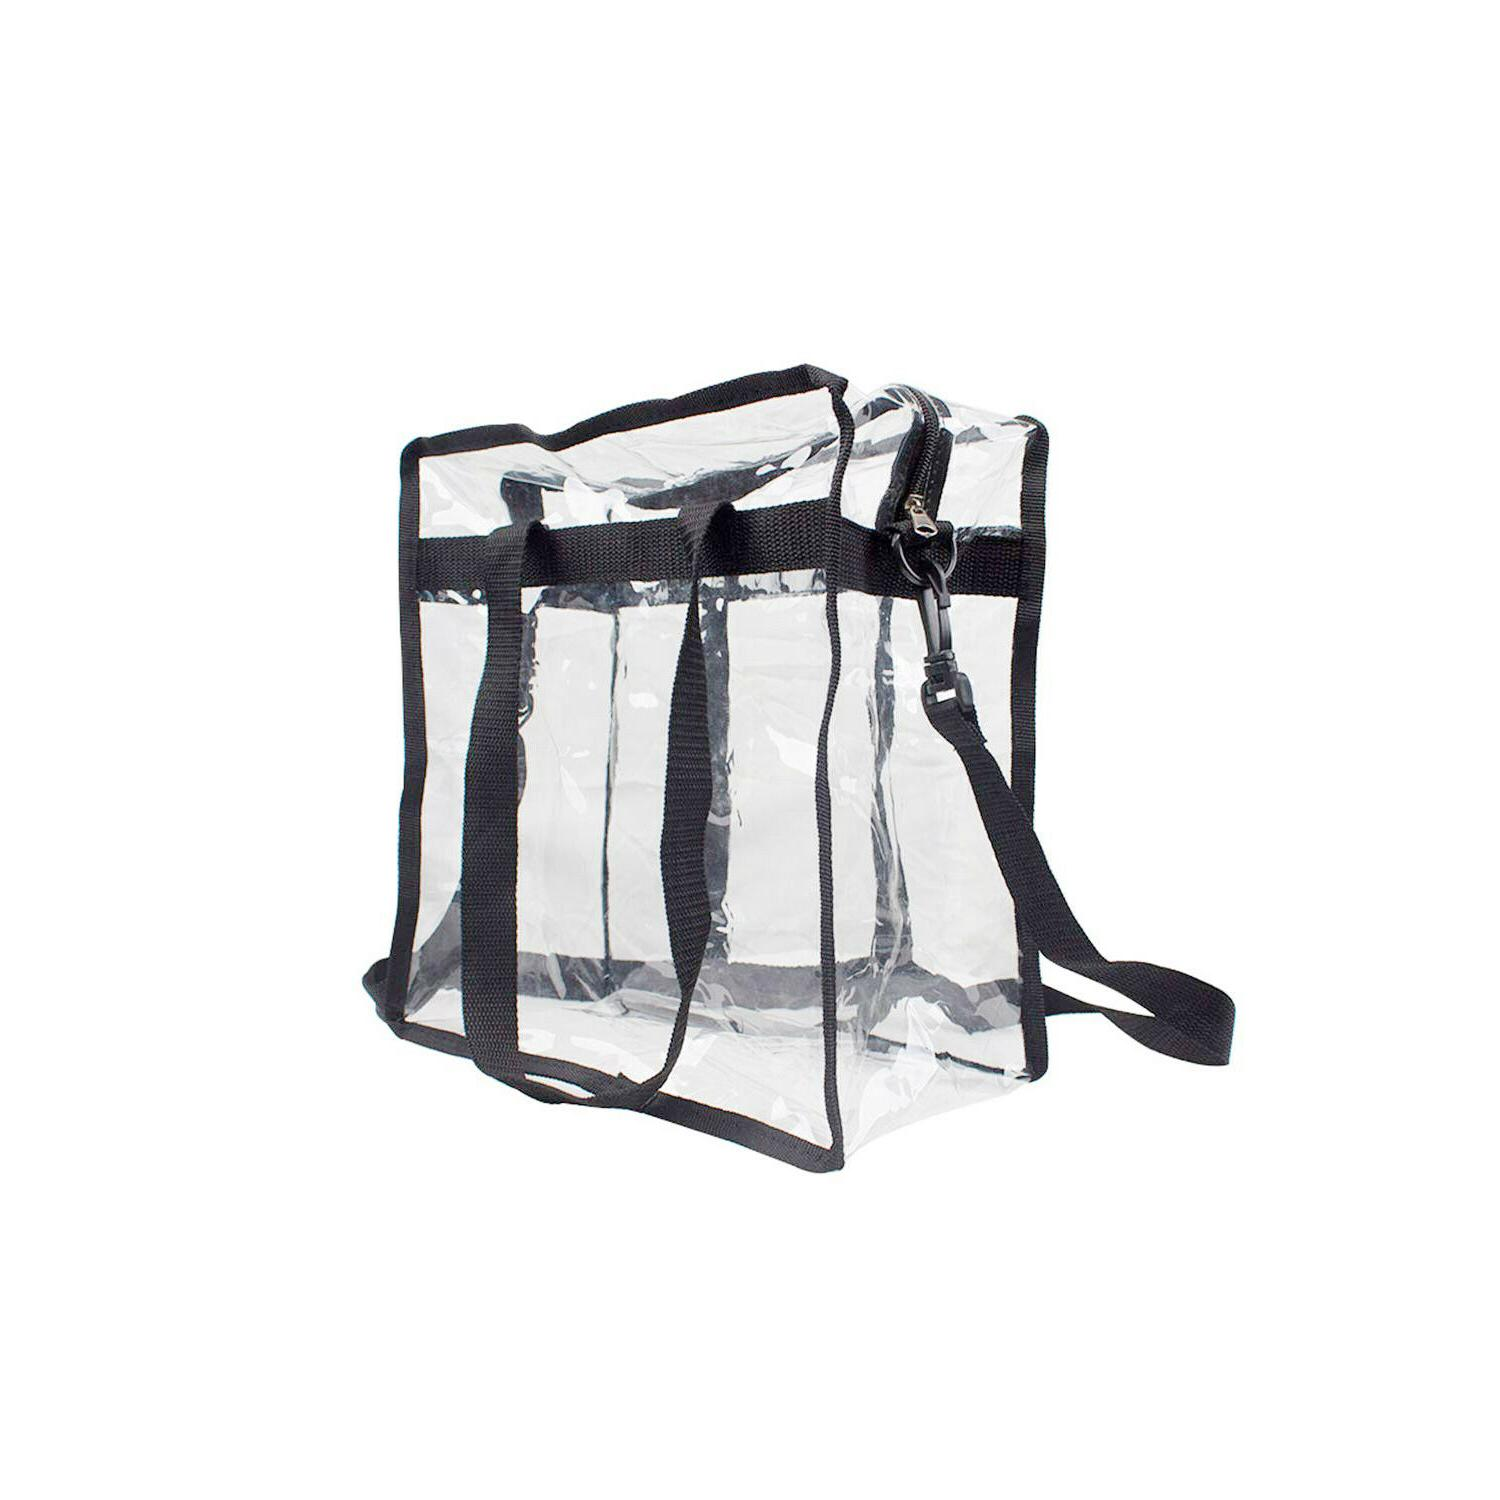 Clear Bag Straps Large Purse Strong Zippered